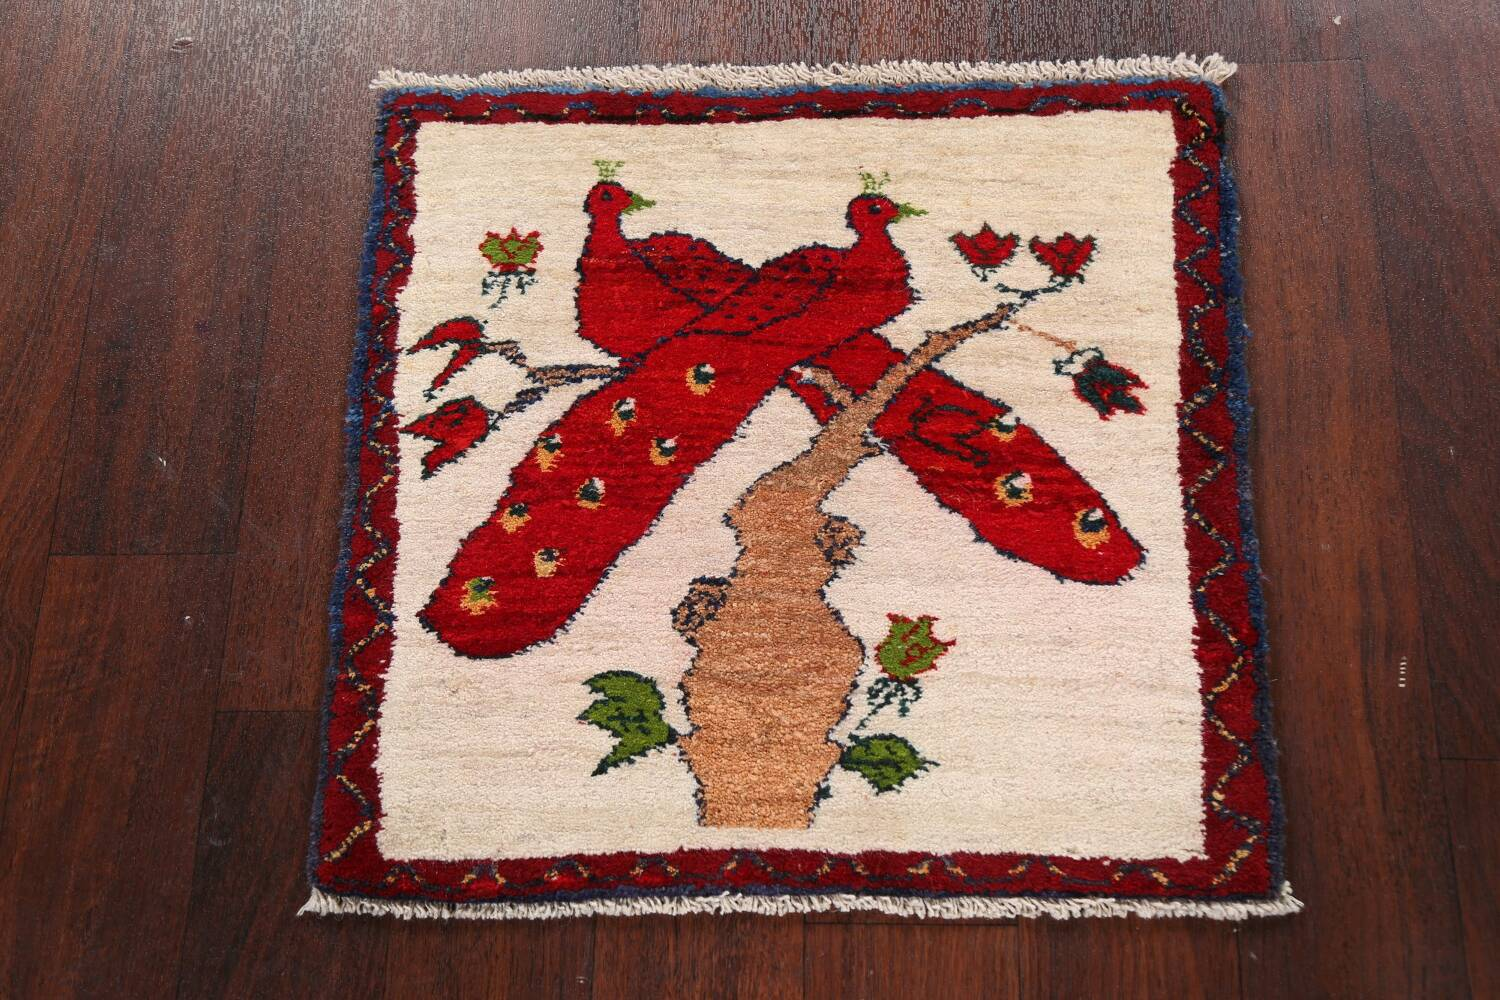 Animal Pictorial Gabbeh Persian Area Rug 2x2 image 2